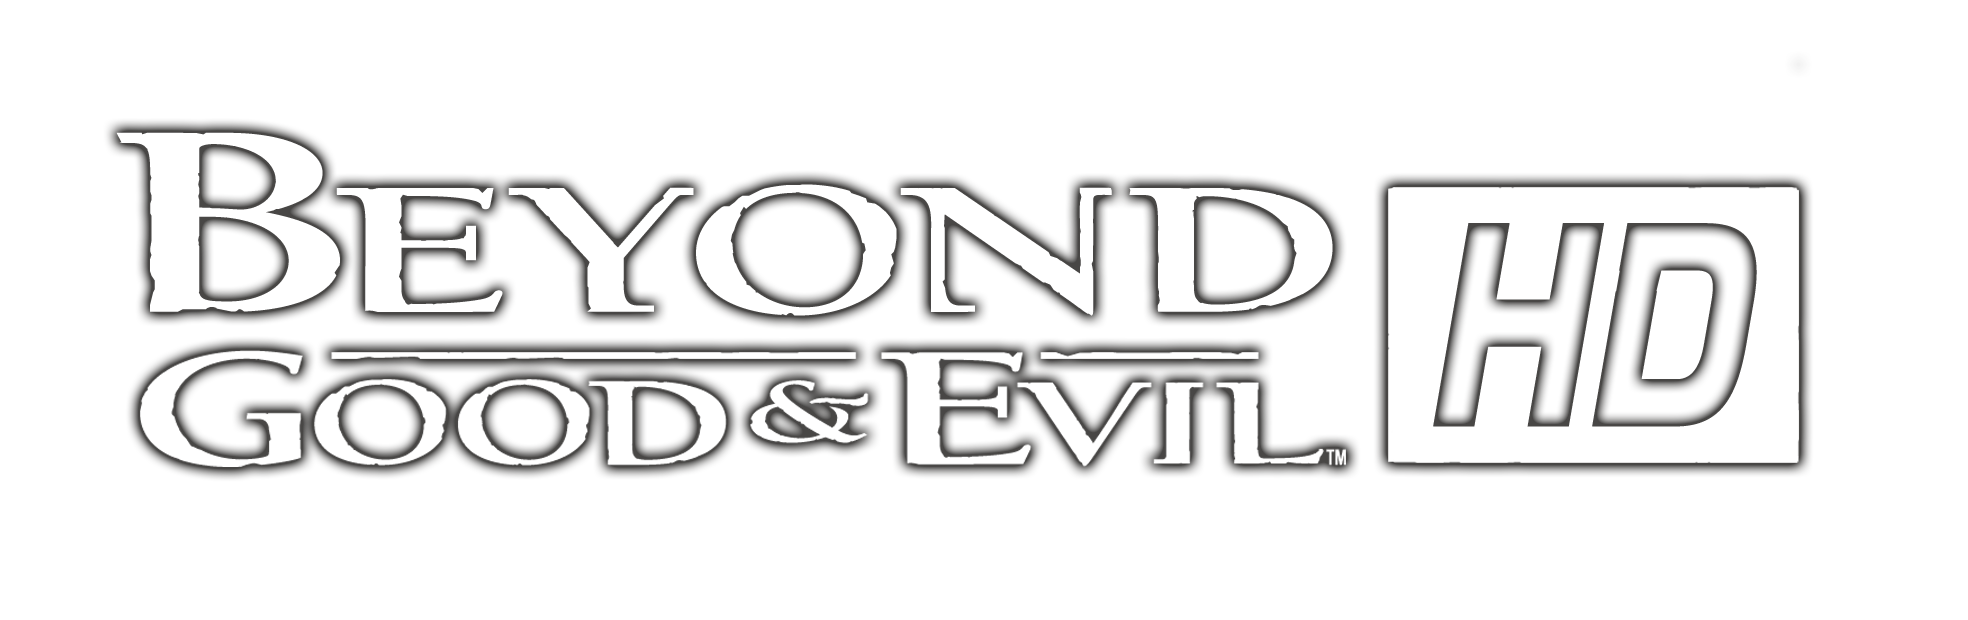 Beyond good and evil logo png. Hd